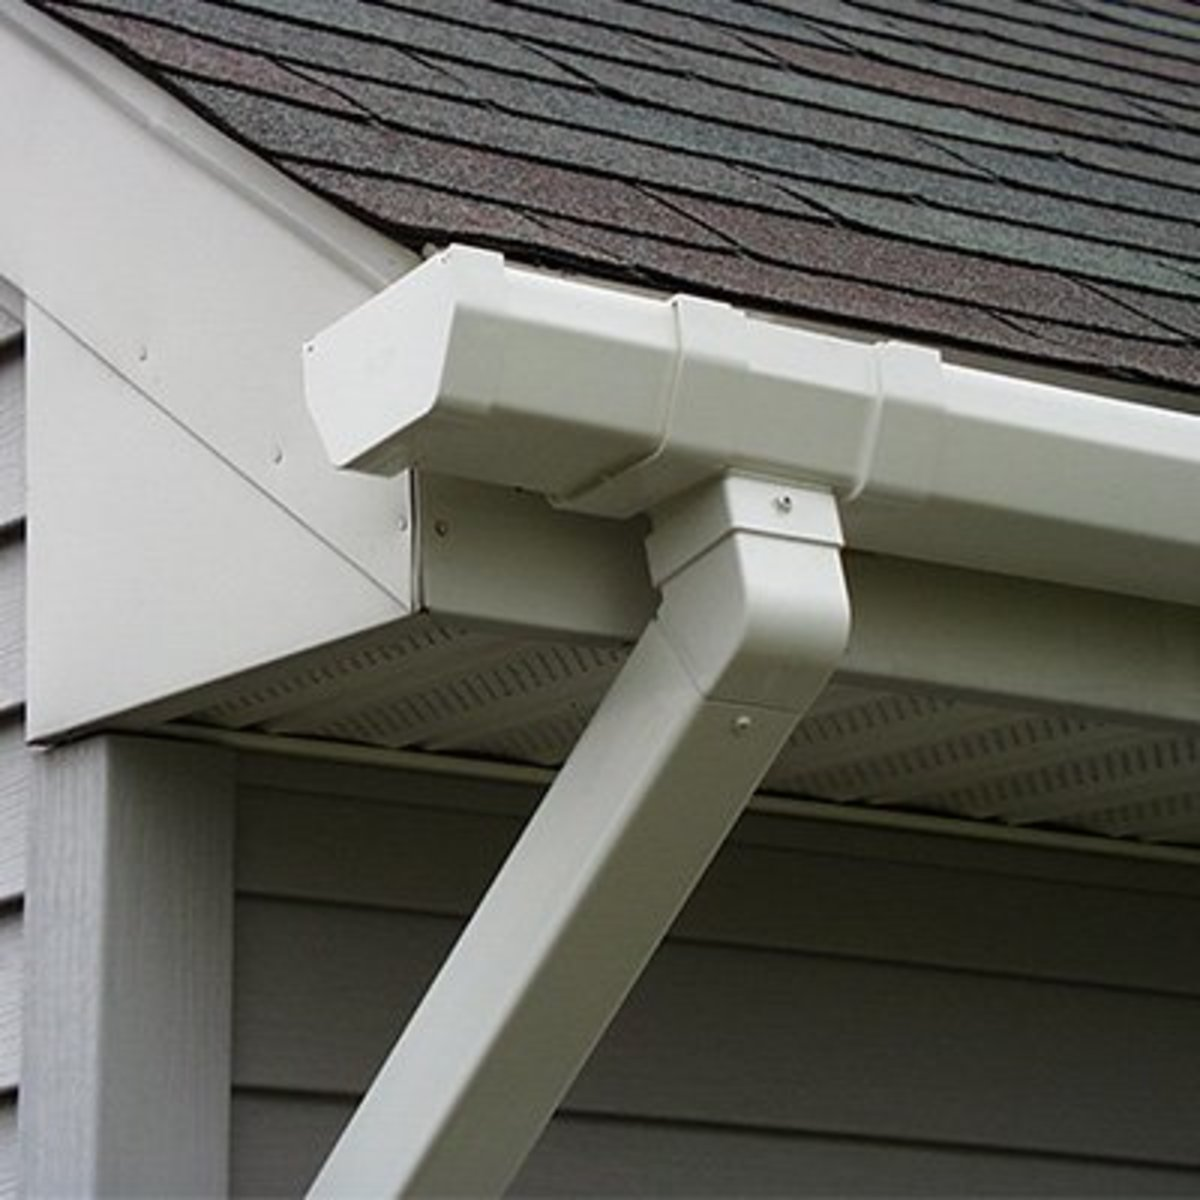 Tips for Spray Painting Gutters and Downspouts | Dengarden